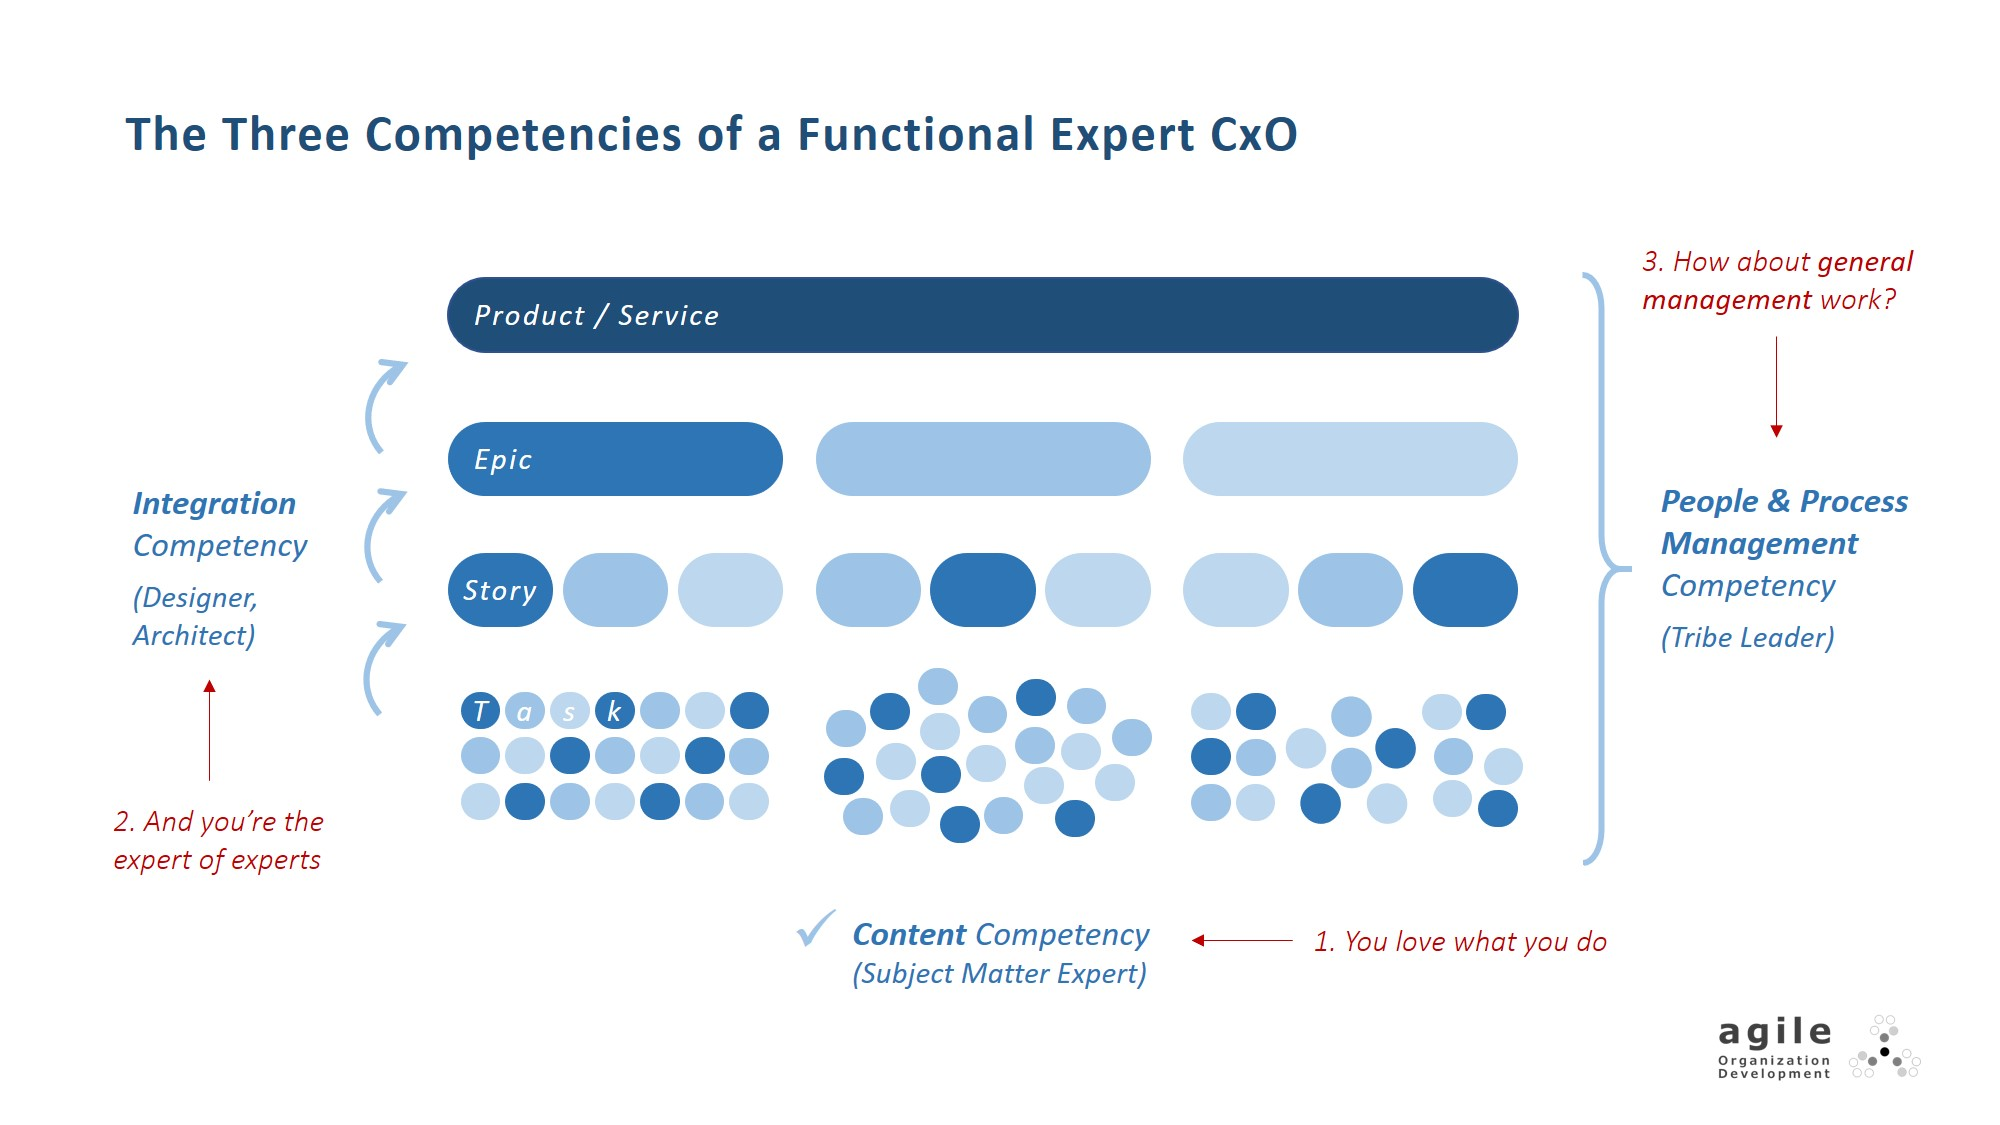 The Three Competencies of a Functional Expert CxO